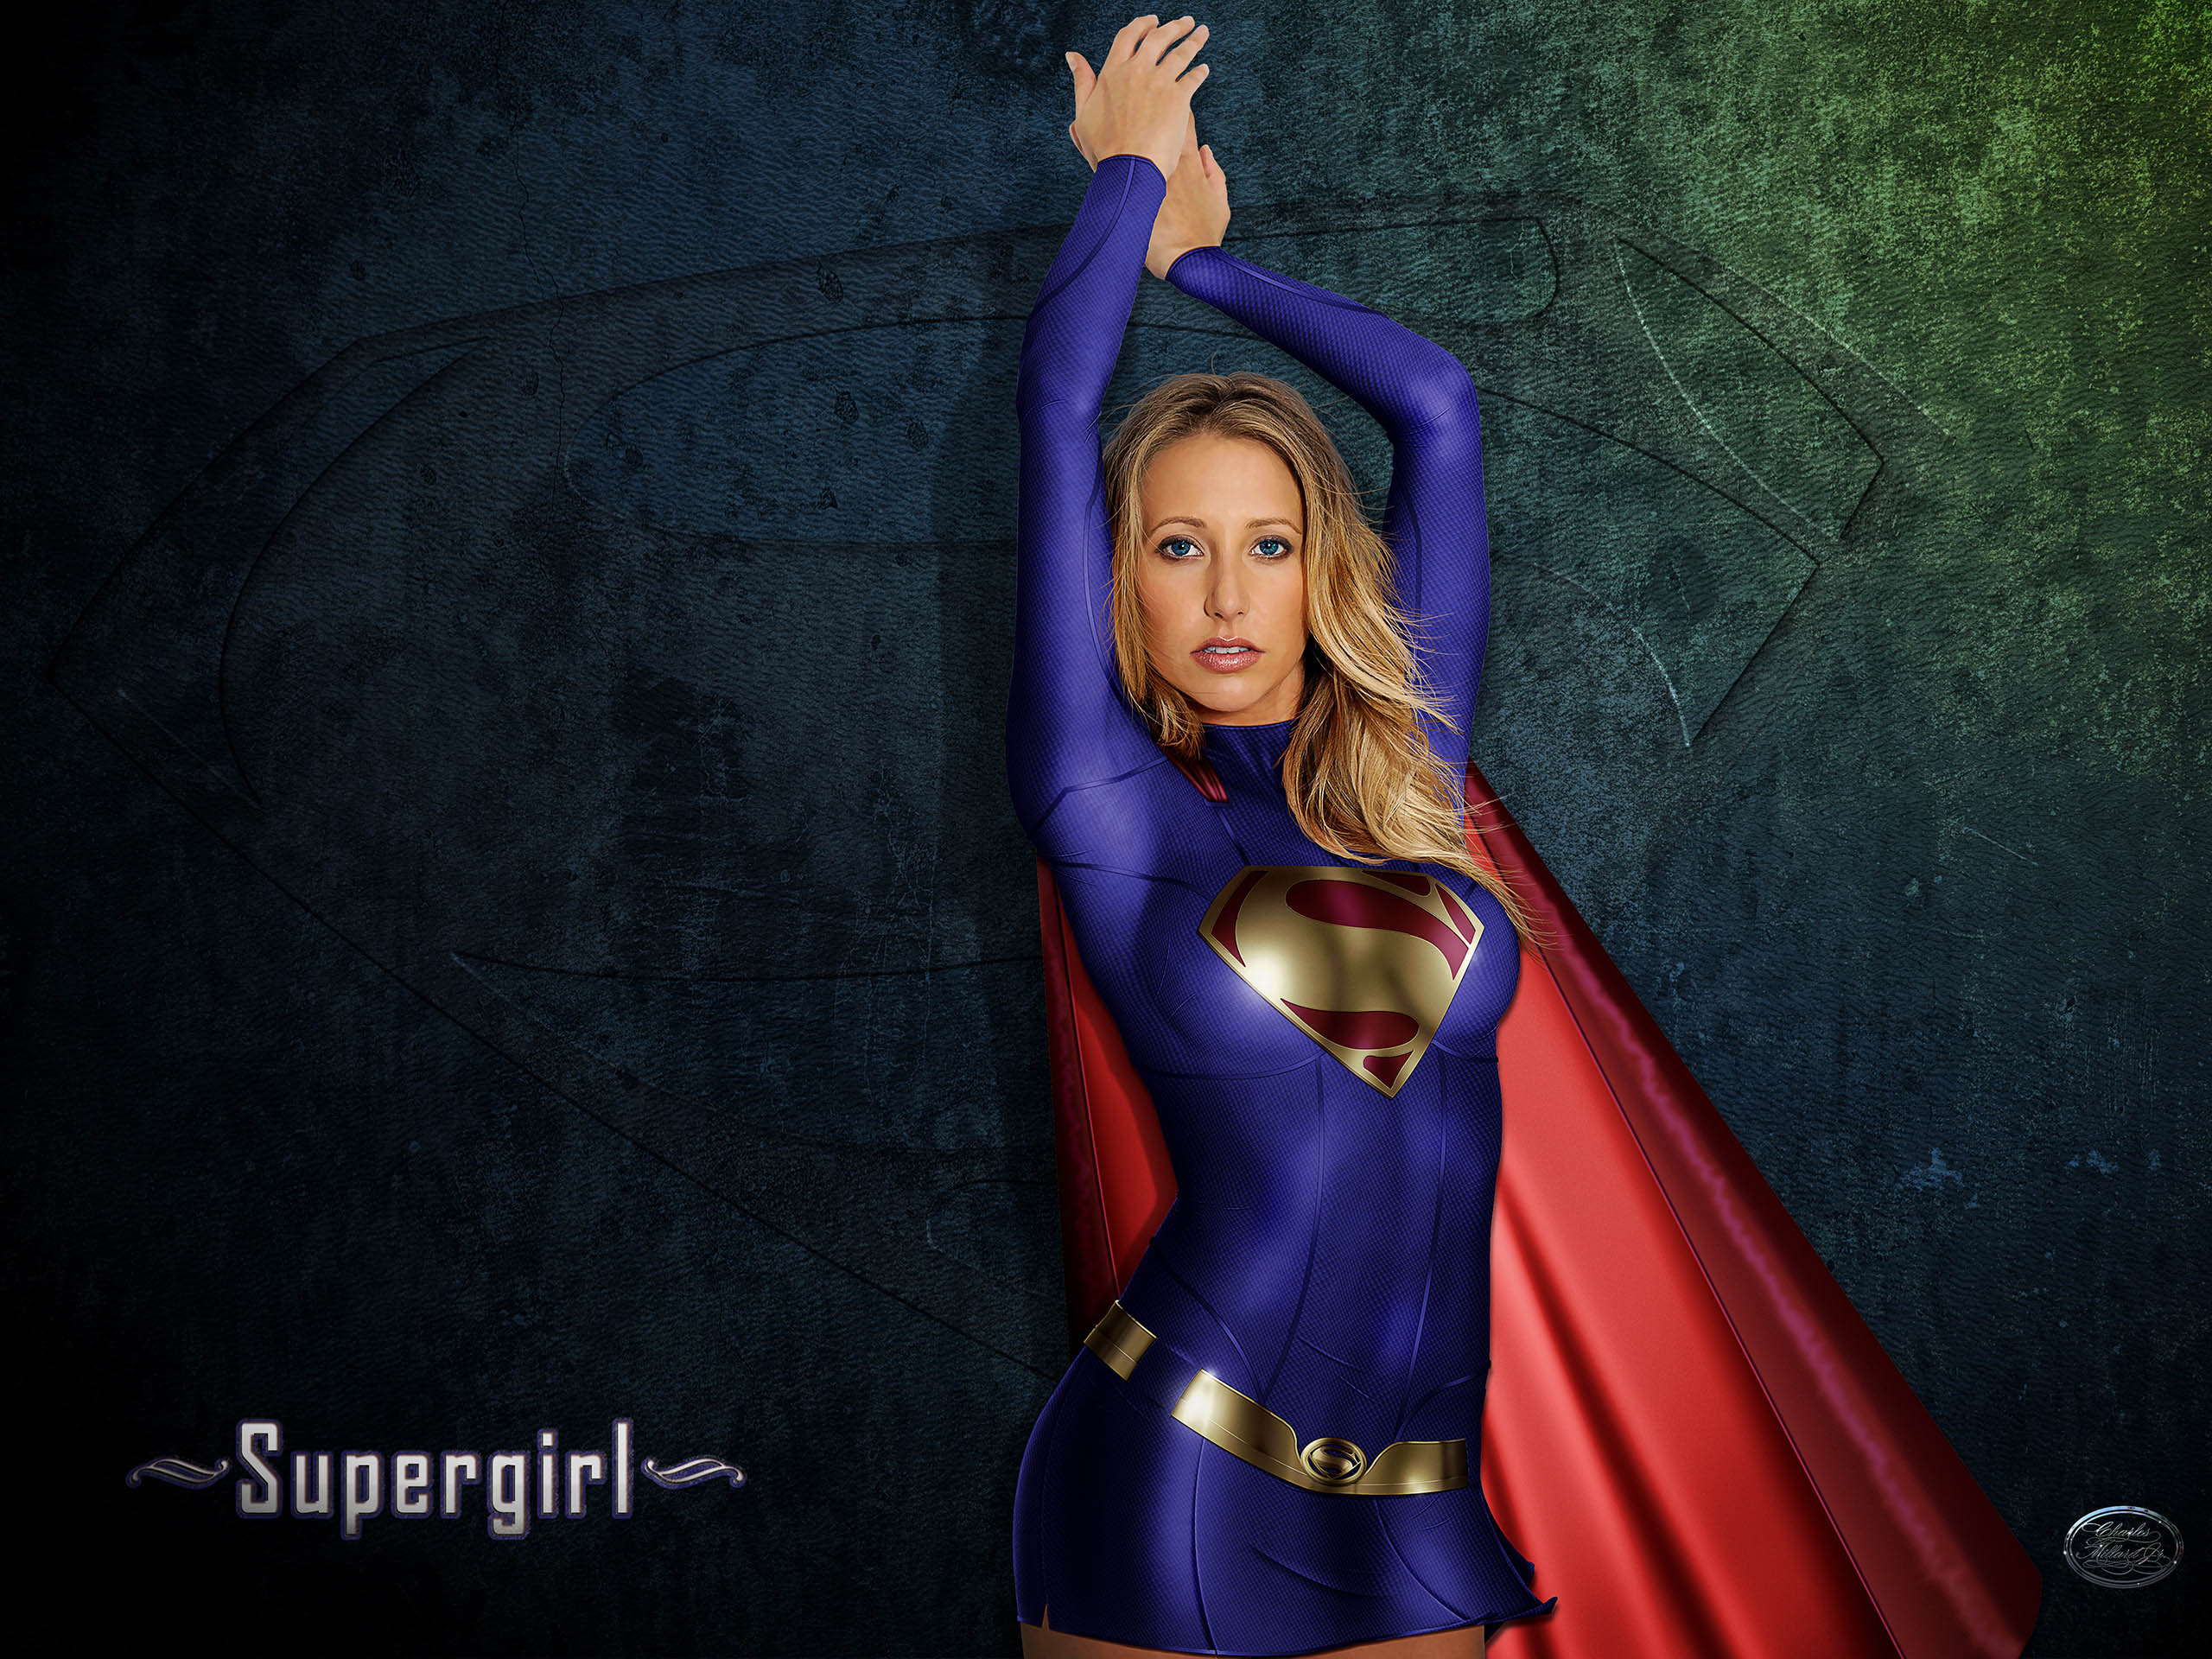 Supergirl animated hot sexy wallpaper fucking tubes